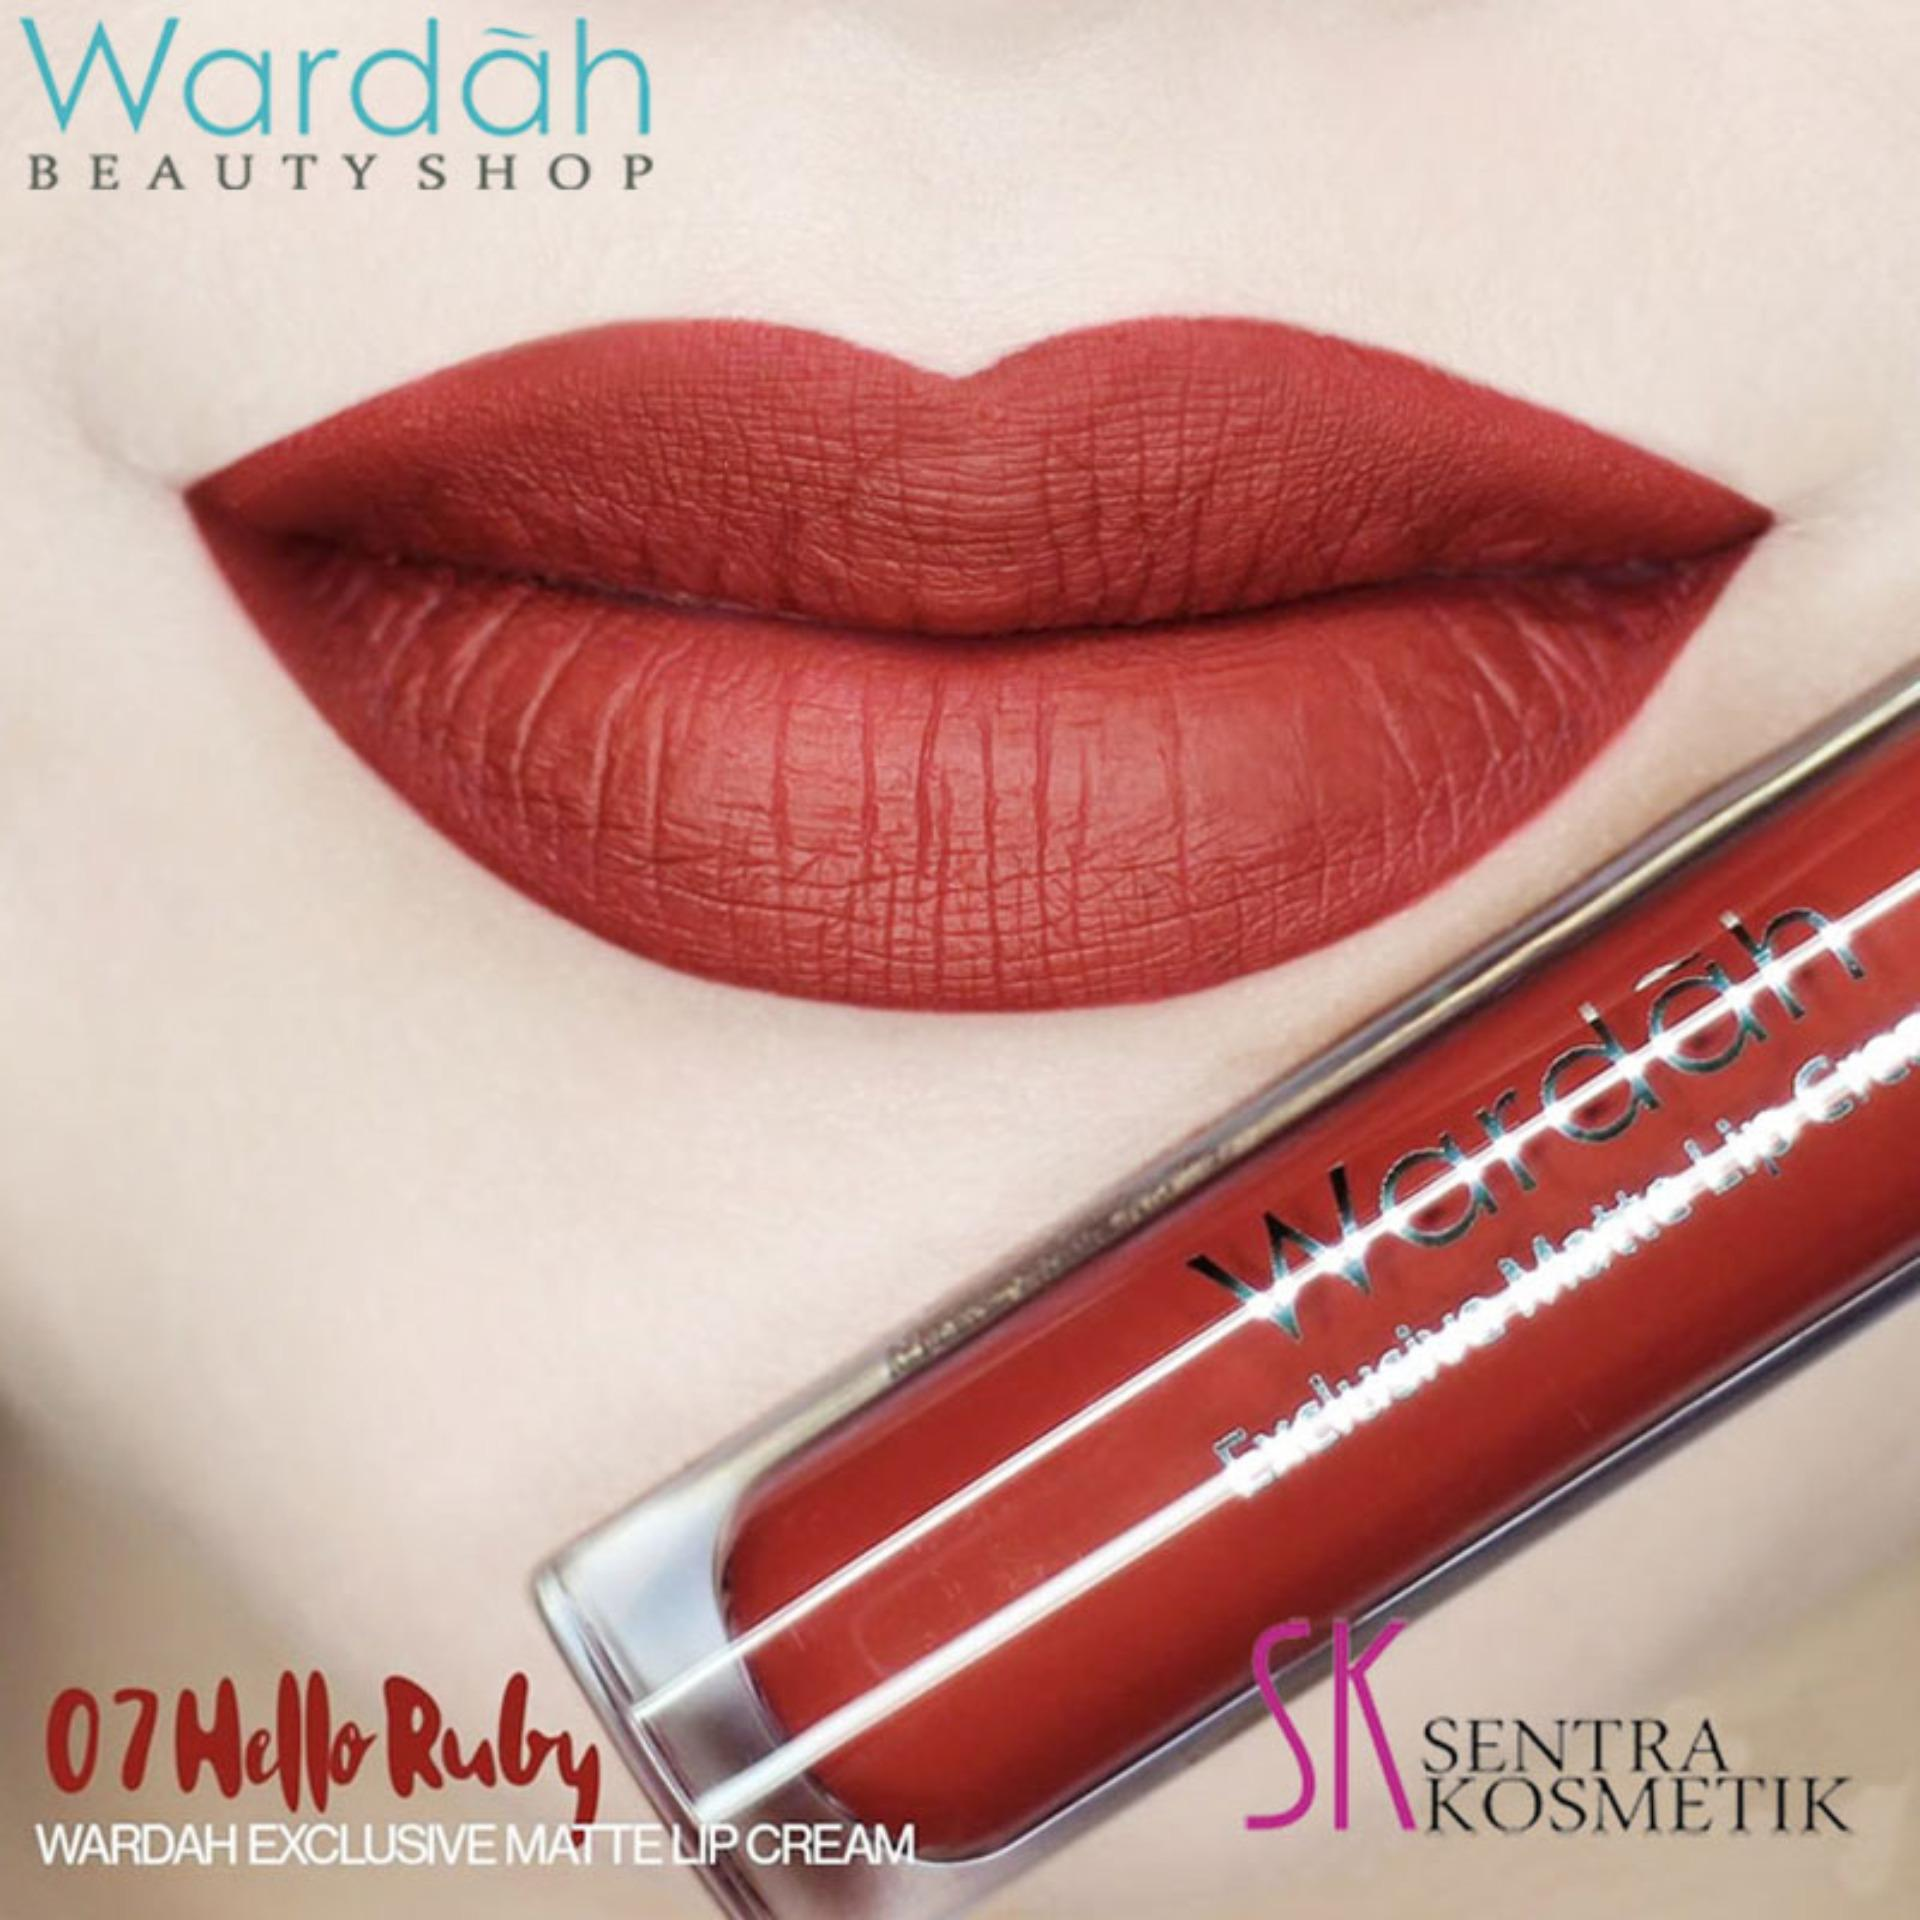 Wardah Exclusive MATTE LIP CREAM No 07 - HELLO RUBY